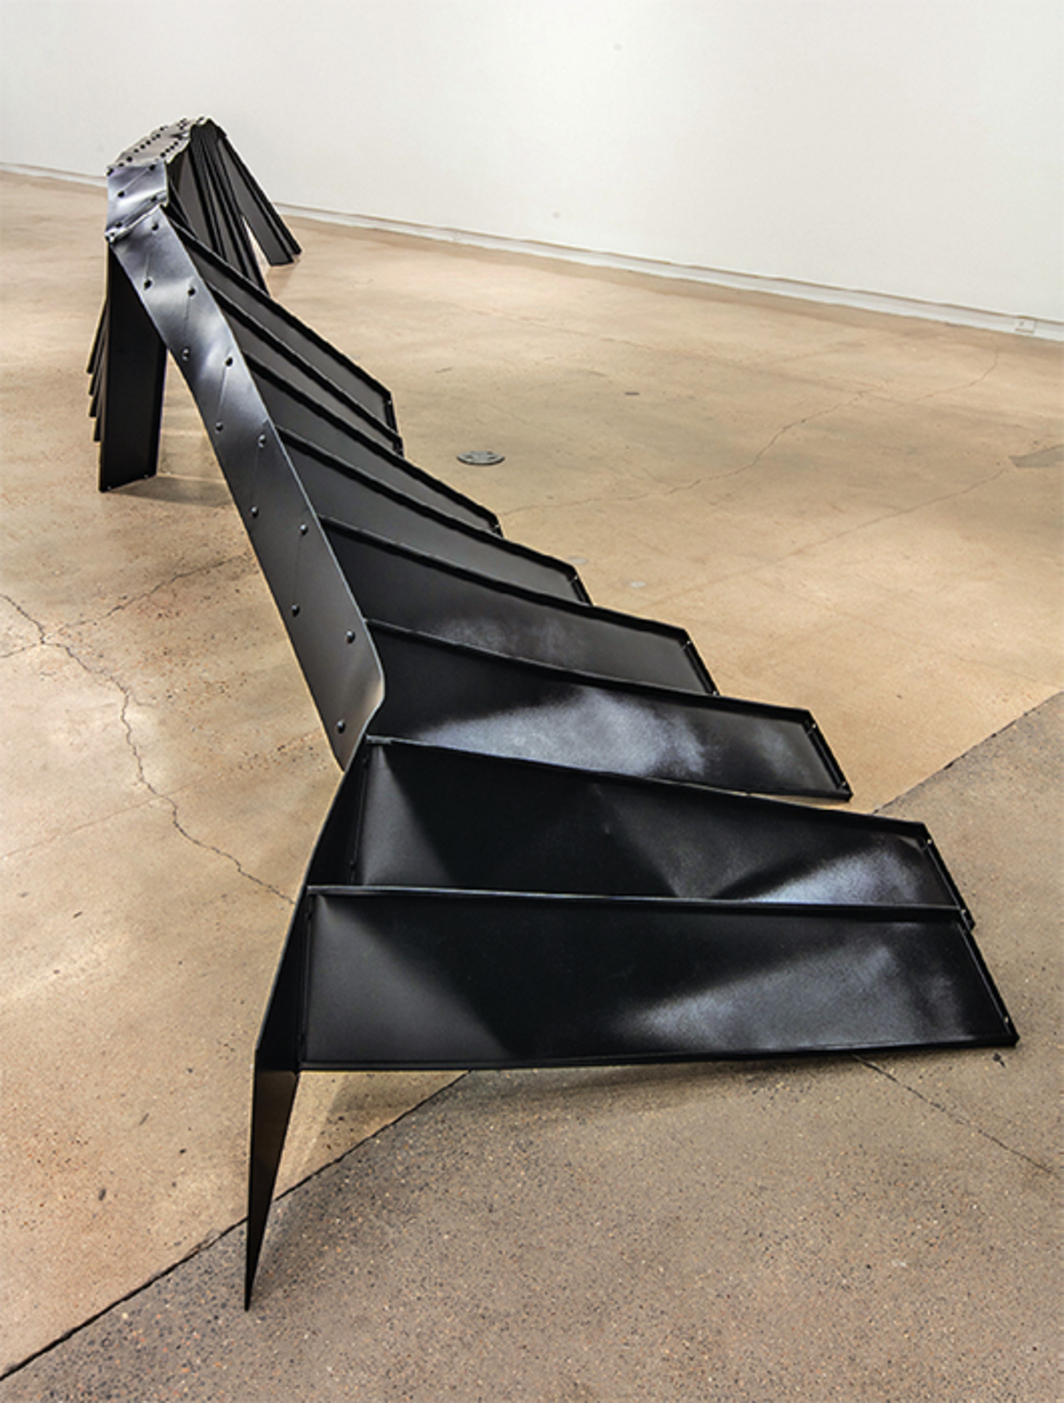 "Monika Sosnowska, Stairs, 2016, steel, paint, 3' 11 1/4"" x 5' 87⁄8"" x 34' 93/8""."